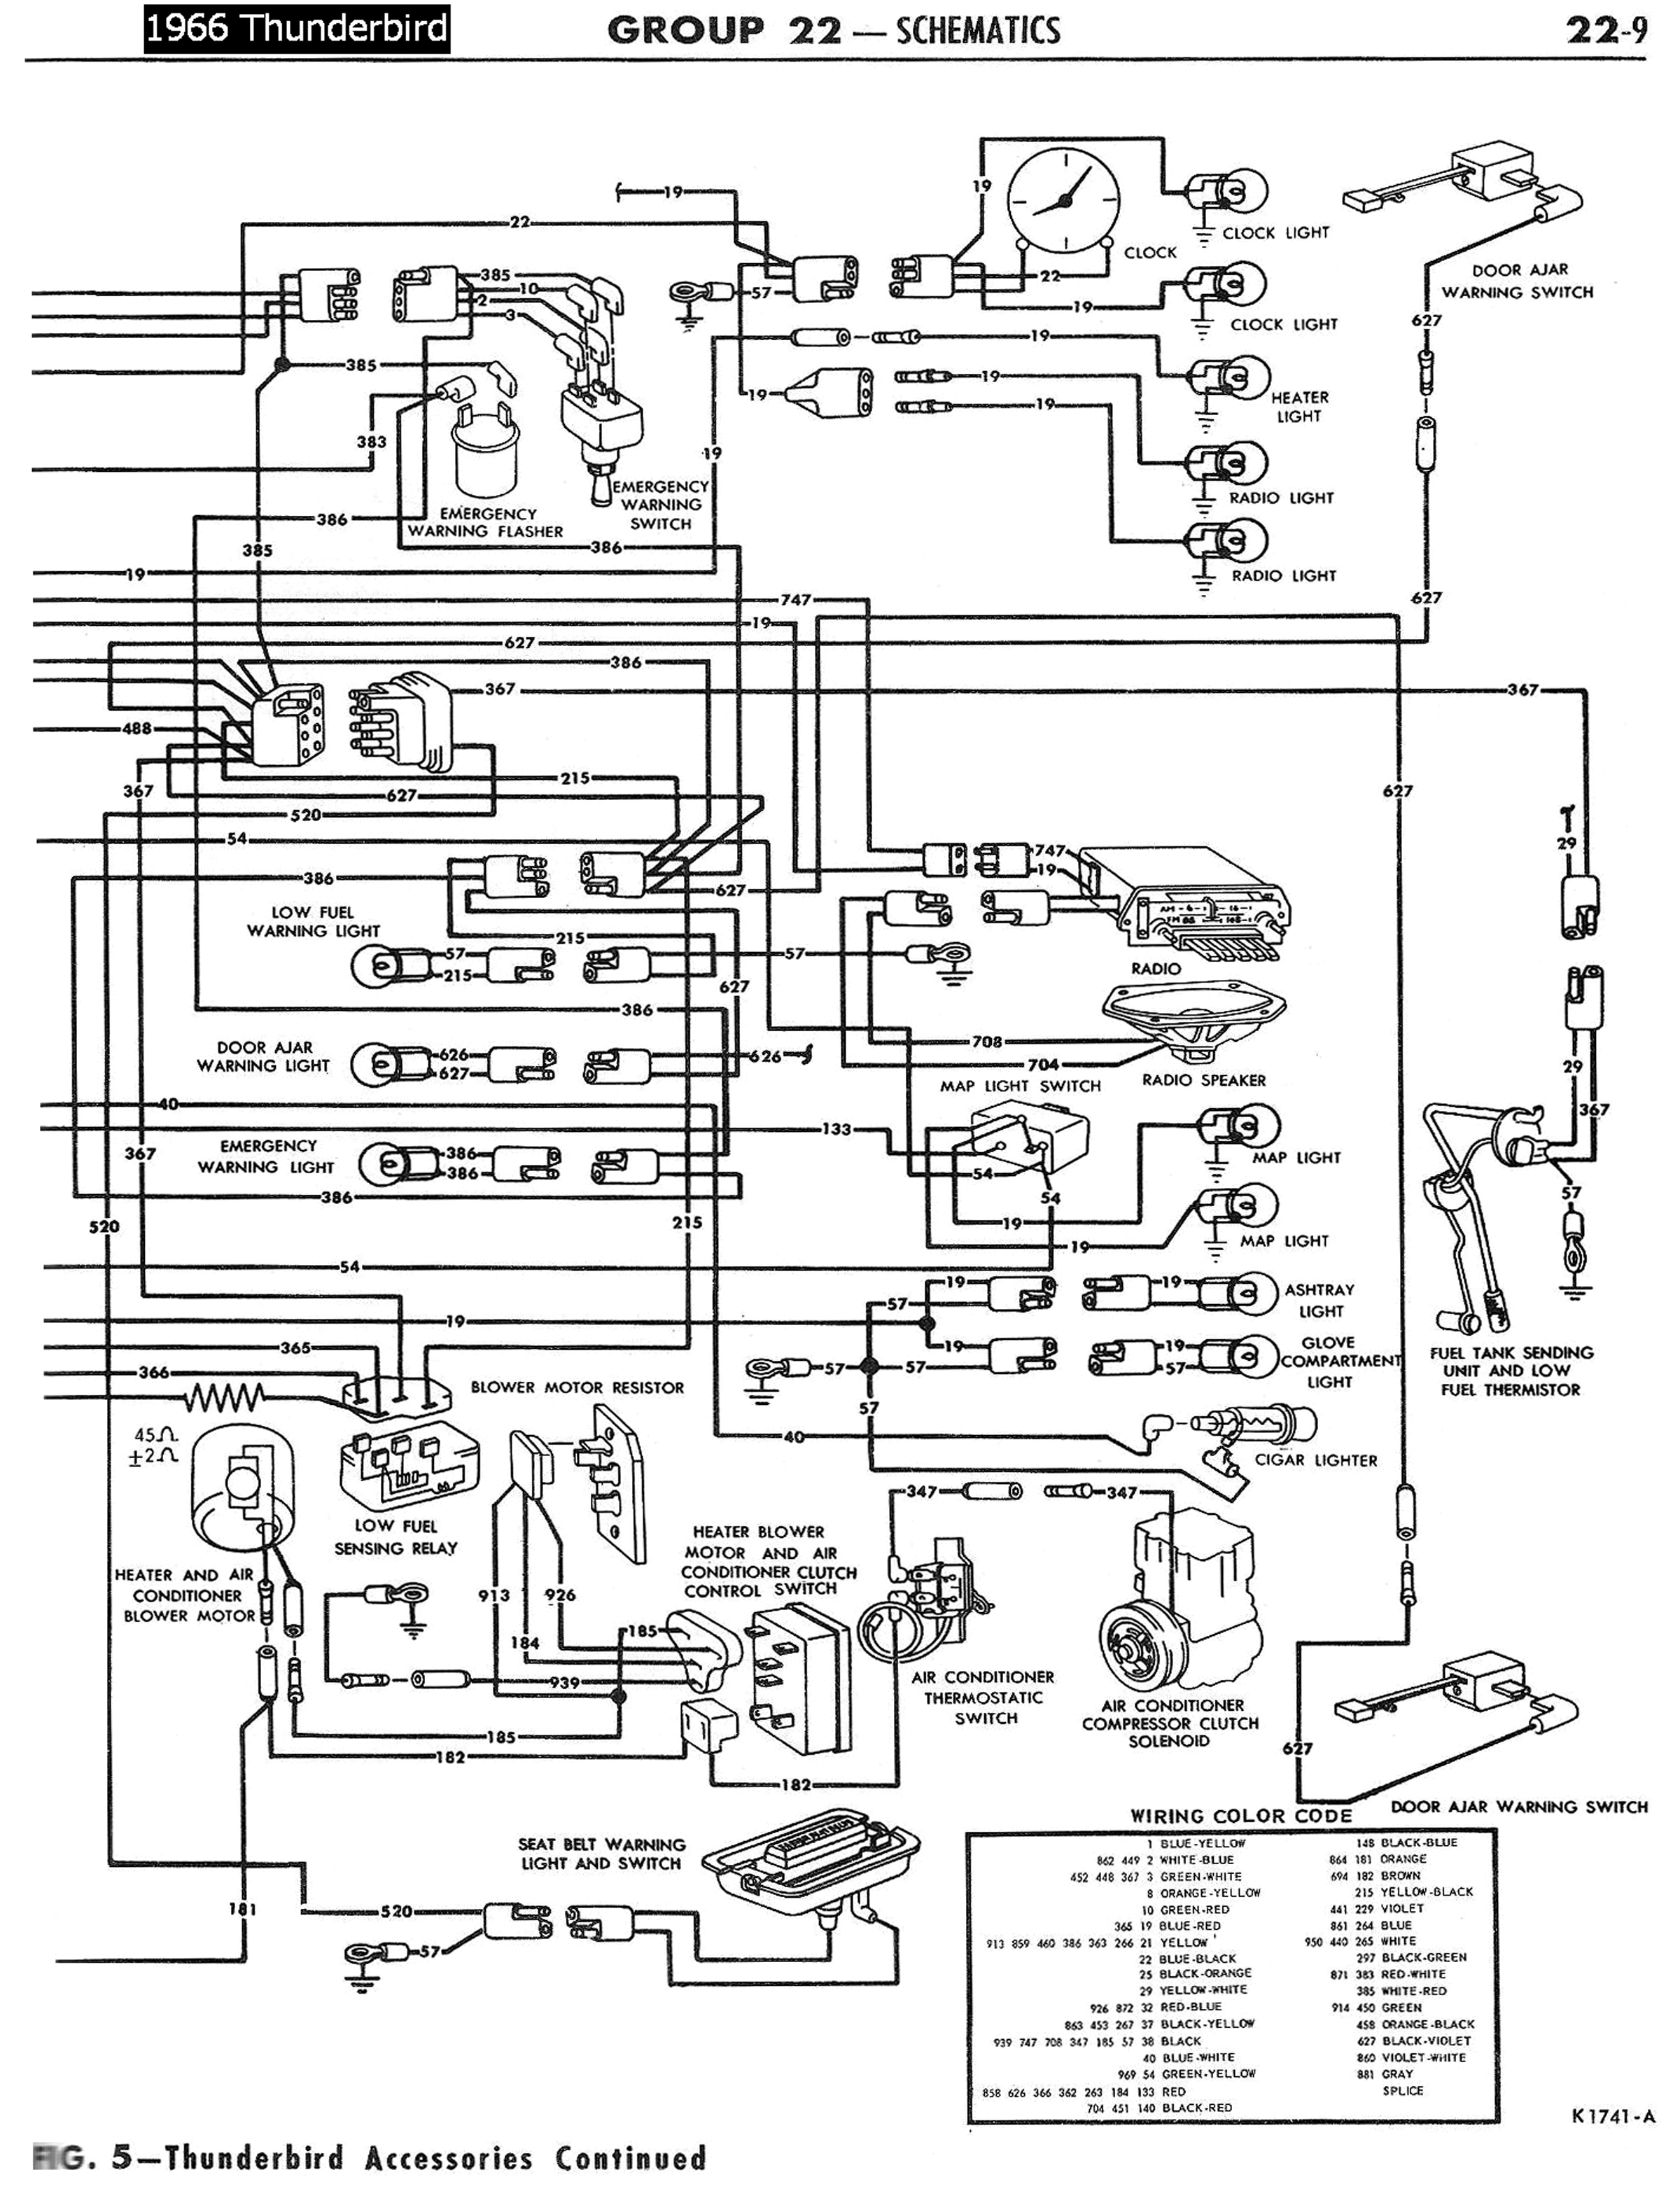 66 Thunderbird Wiring Diagram